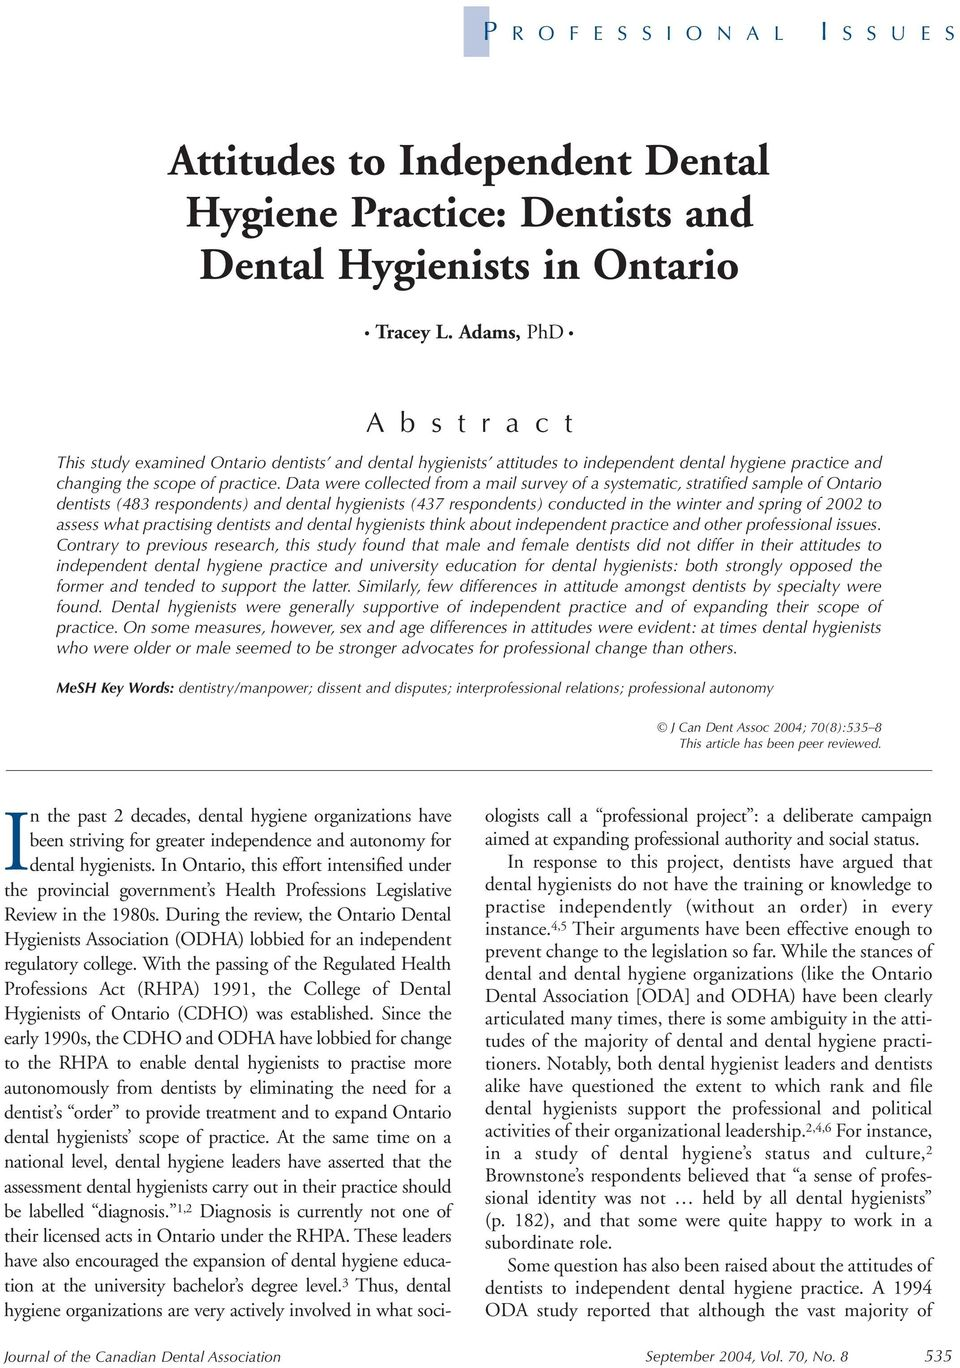 Data were collected from a mail survey of a systematic, stratified sample of Ontario dentists (483 respondents) and dental hygienists (437 respondents) conducted in the winter and spring of 2002 to